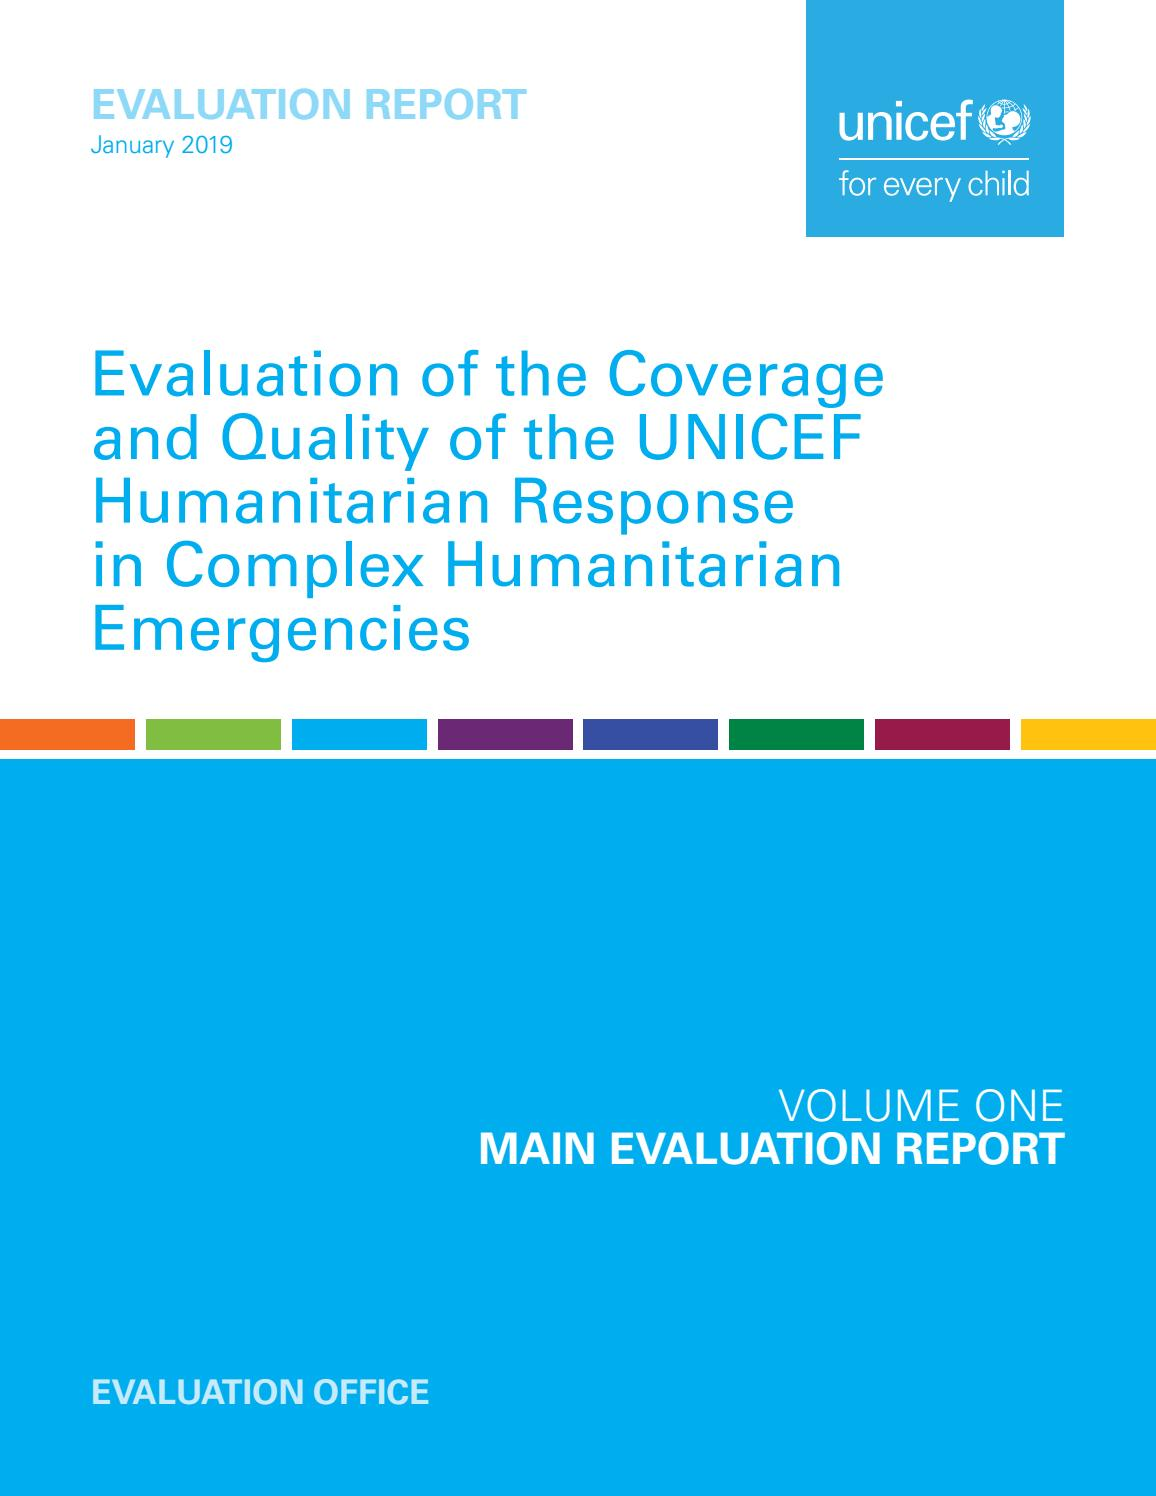 Evaluation of the Coverage and Quality of the UNICEF